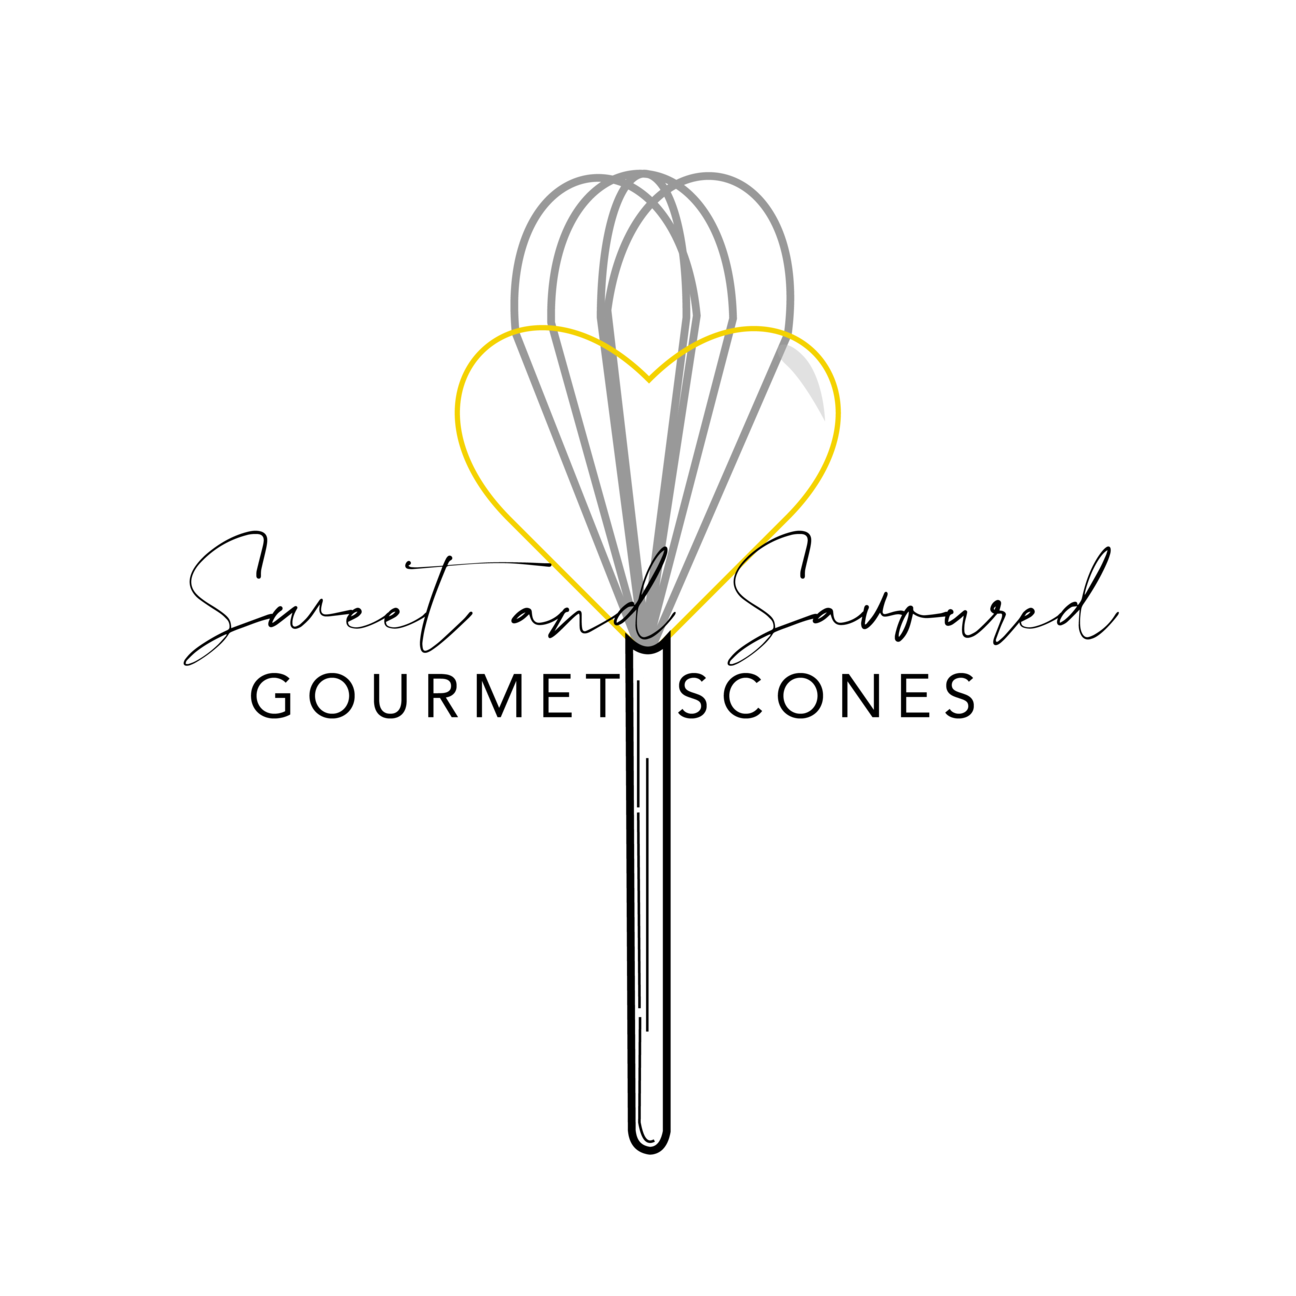 Sweet and Savoured Gourmet Scones